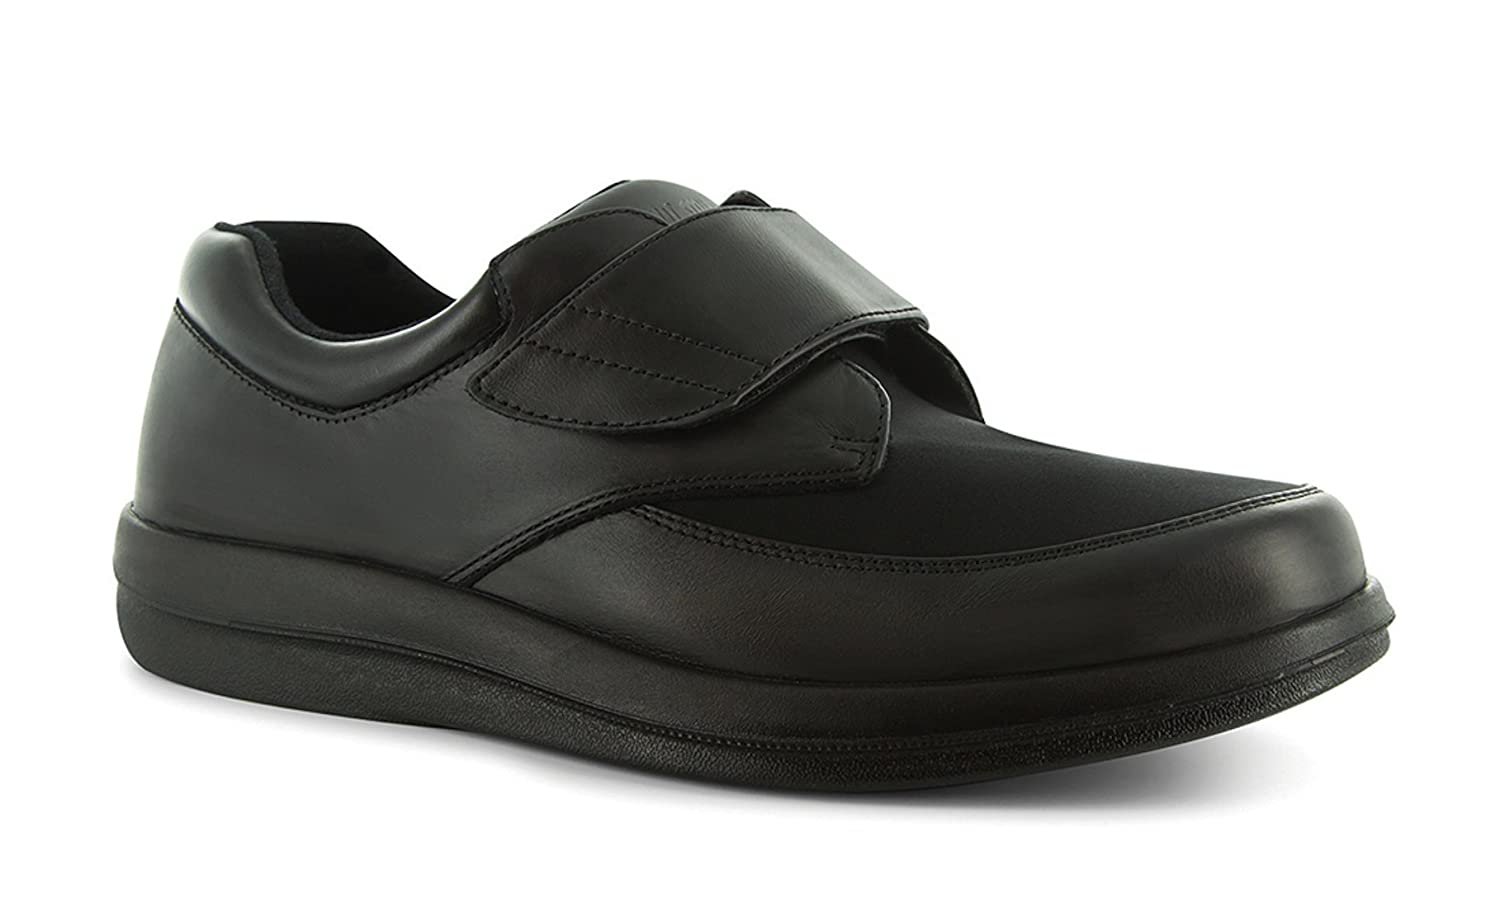 P W Minor Natural Men's Therapeutic Diabetic Extra Depth Shoe Leather/Lycra Velcro 12.5 E US Men|Black